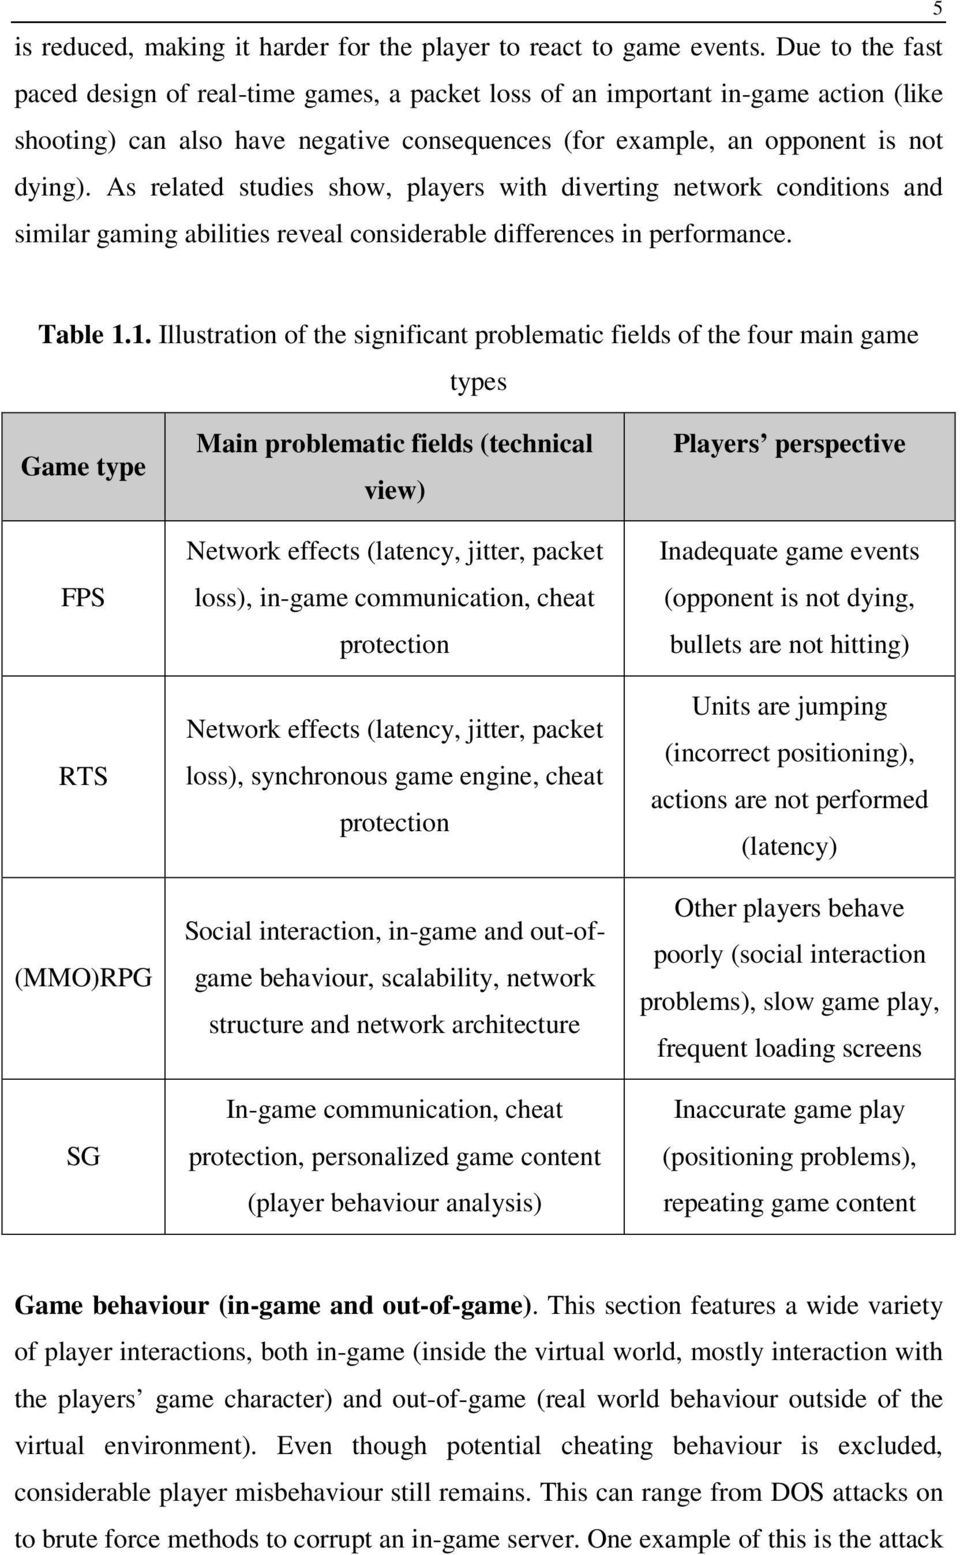 As related studies show, players with diverting network conditions and similar gaming abilities reveal considerable differences in performance. 5 Table 1.